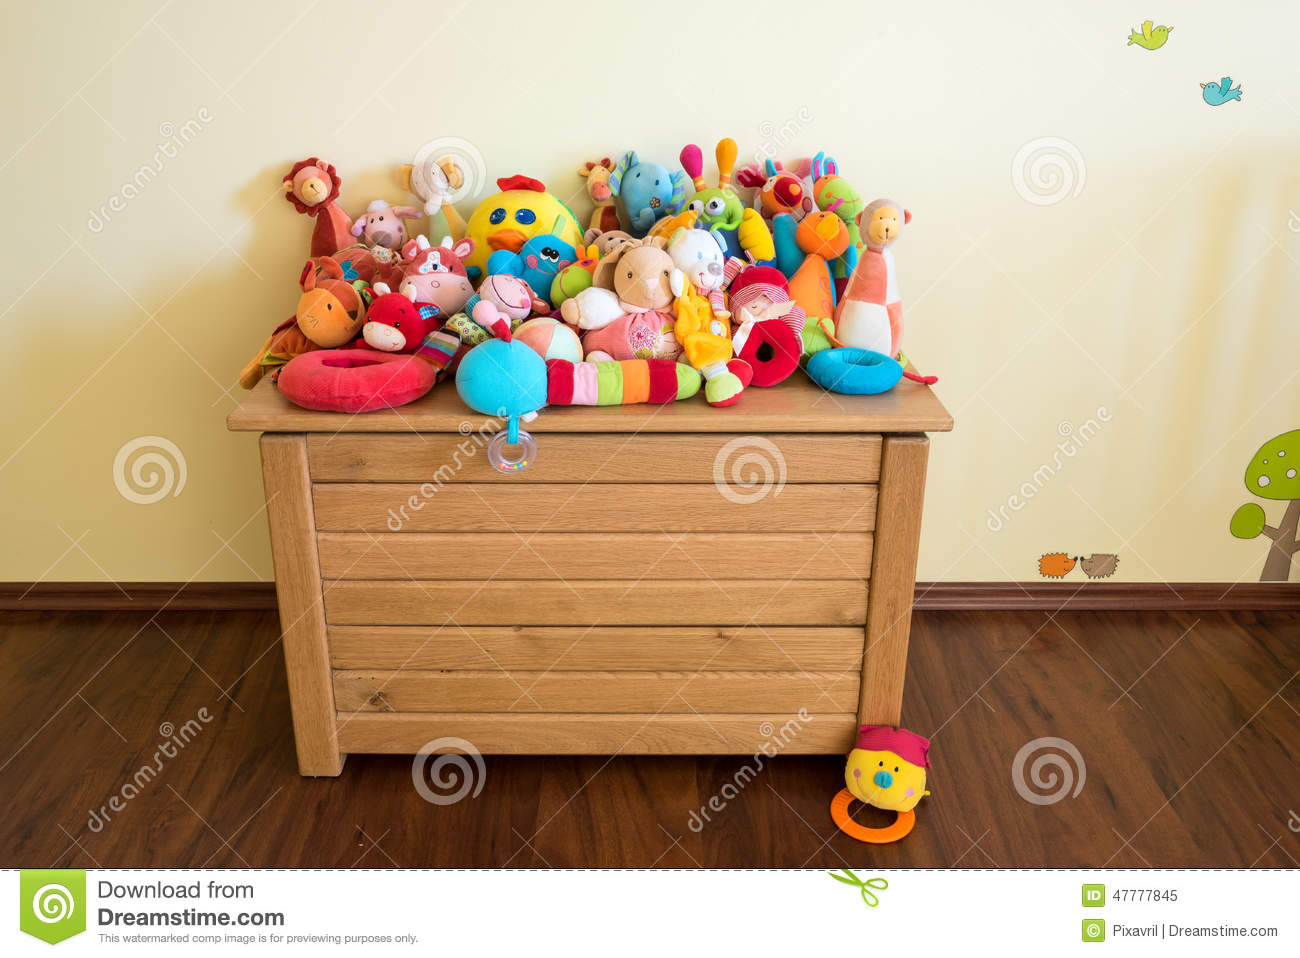 Toy Box Toys Toy Box Full Of Soft Toys Stock Image Image Of Adorable